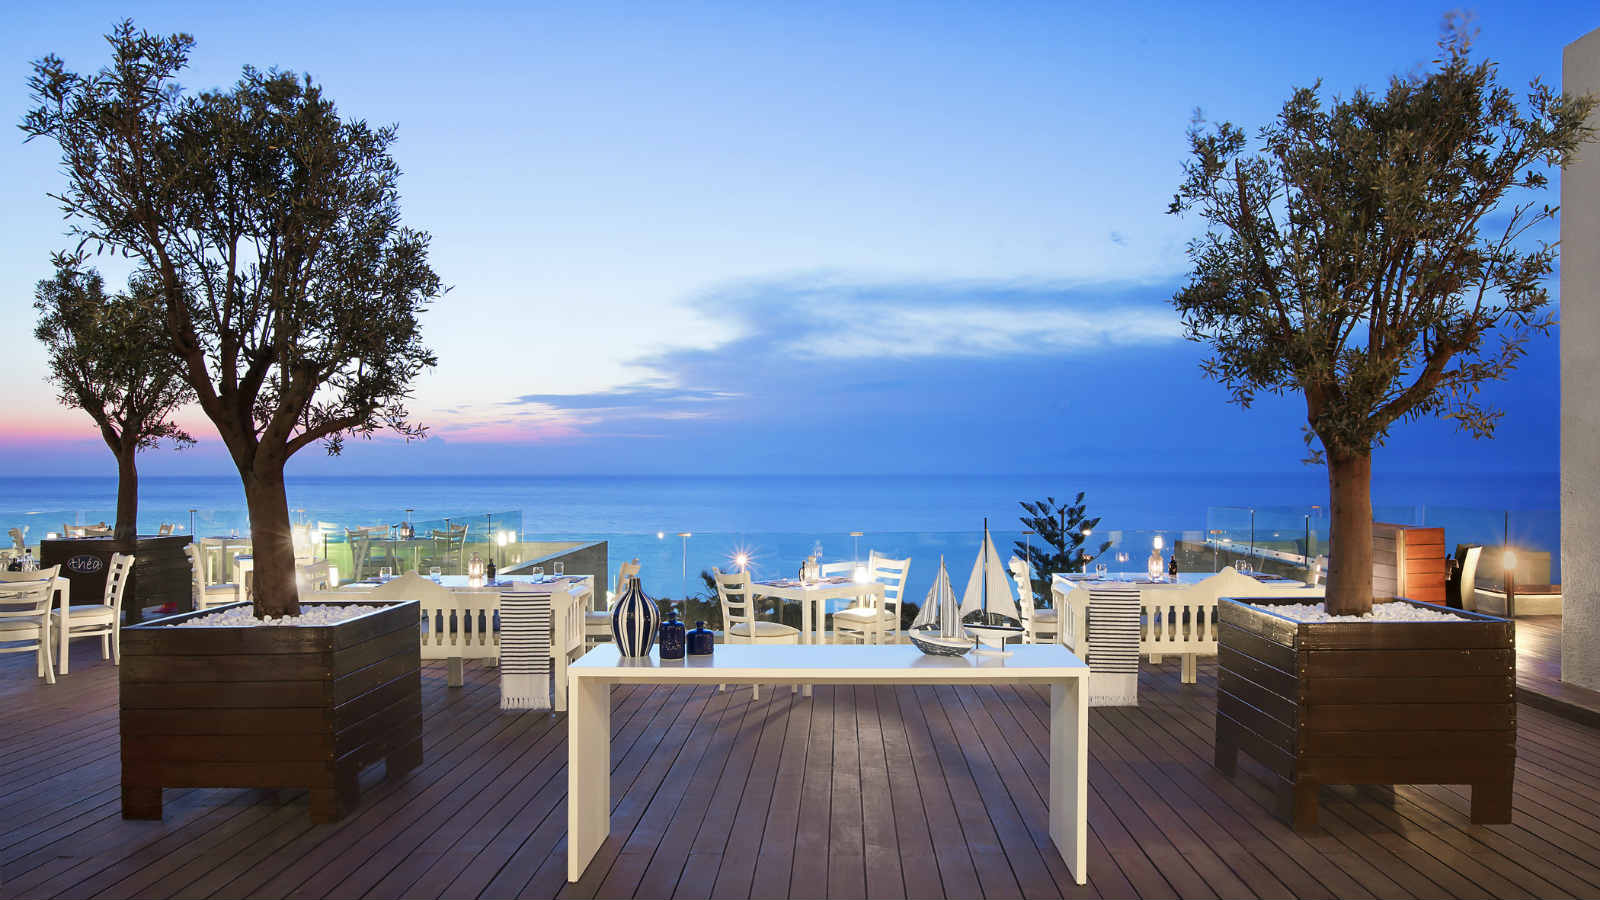 Thea Restaurant featuring traditional Greek cuisine at the Sheraton Rhodes Resort